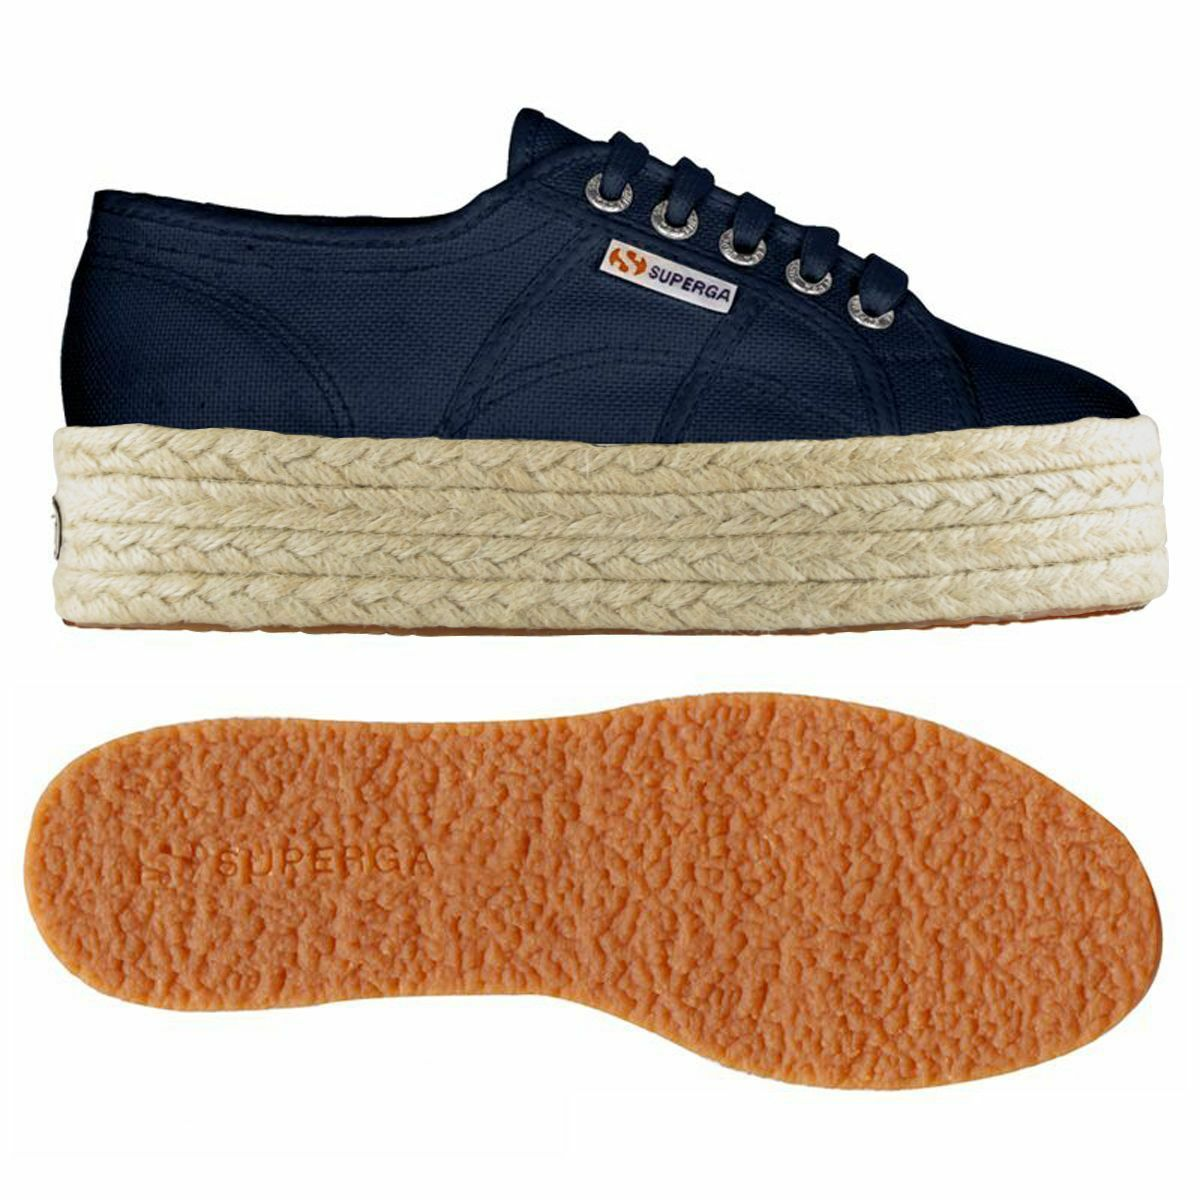 SUPERGA shoes women CON ZEPPA e CORDA blue 2790 cotropew 933 navy  S0099Z0